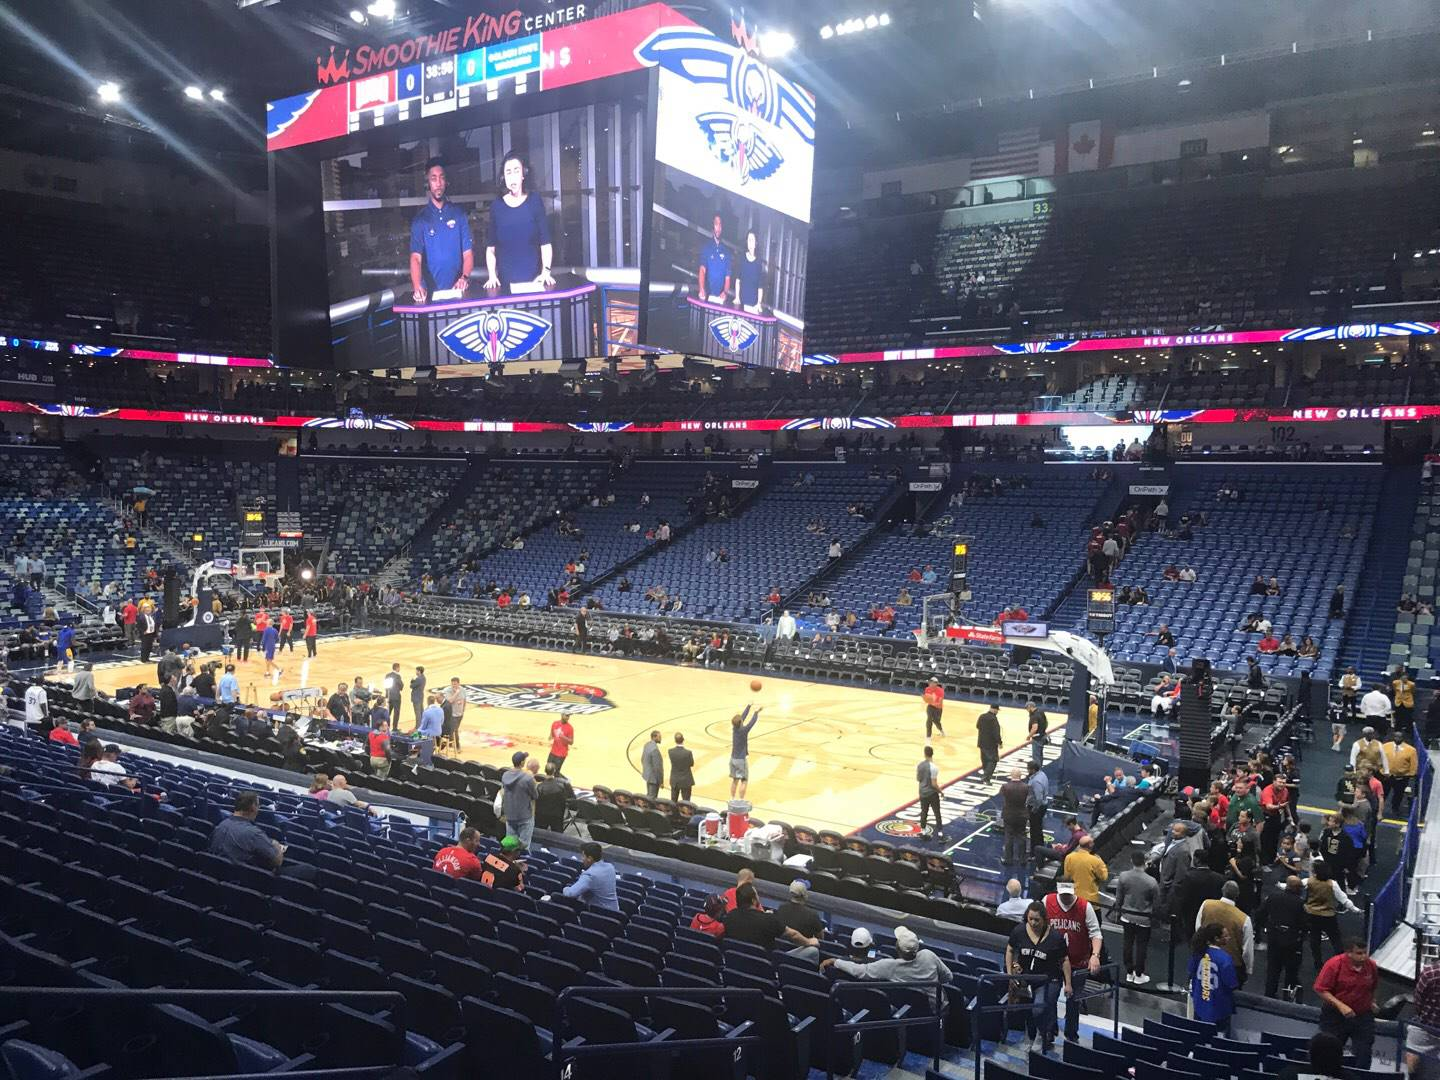 Smoothie King Center Section 110 Row 20 Seat 10